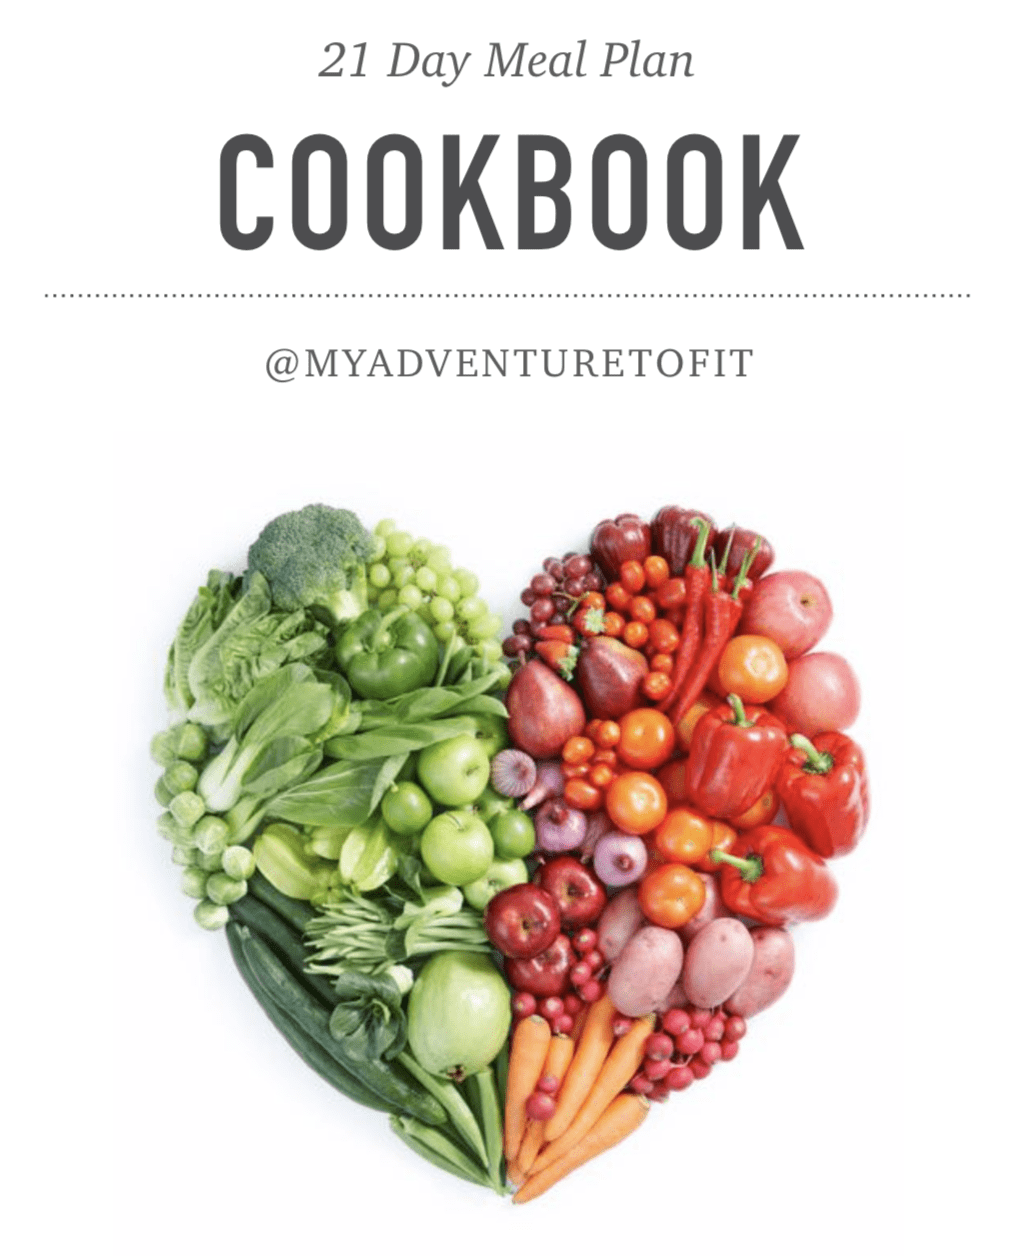 Volume I Recipe Book - 21 Day Meal Plan